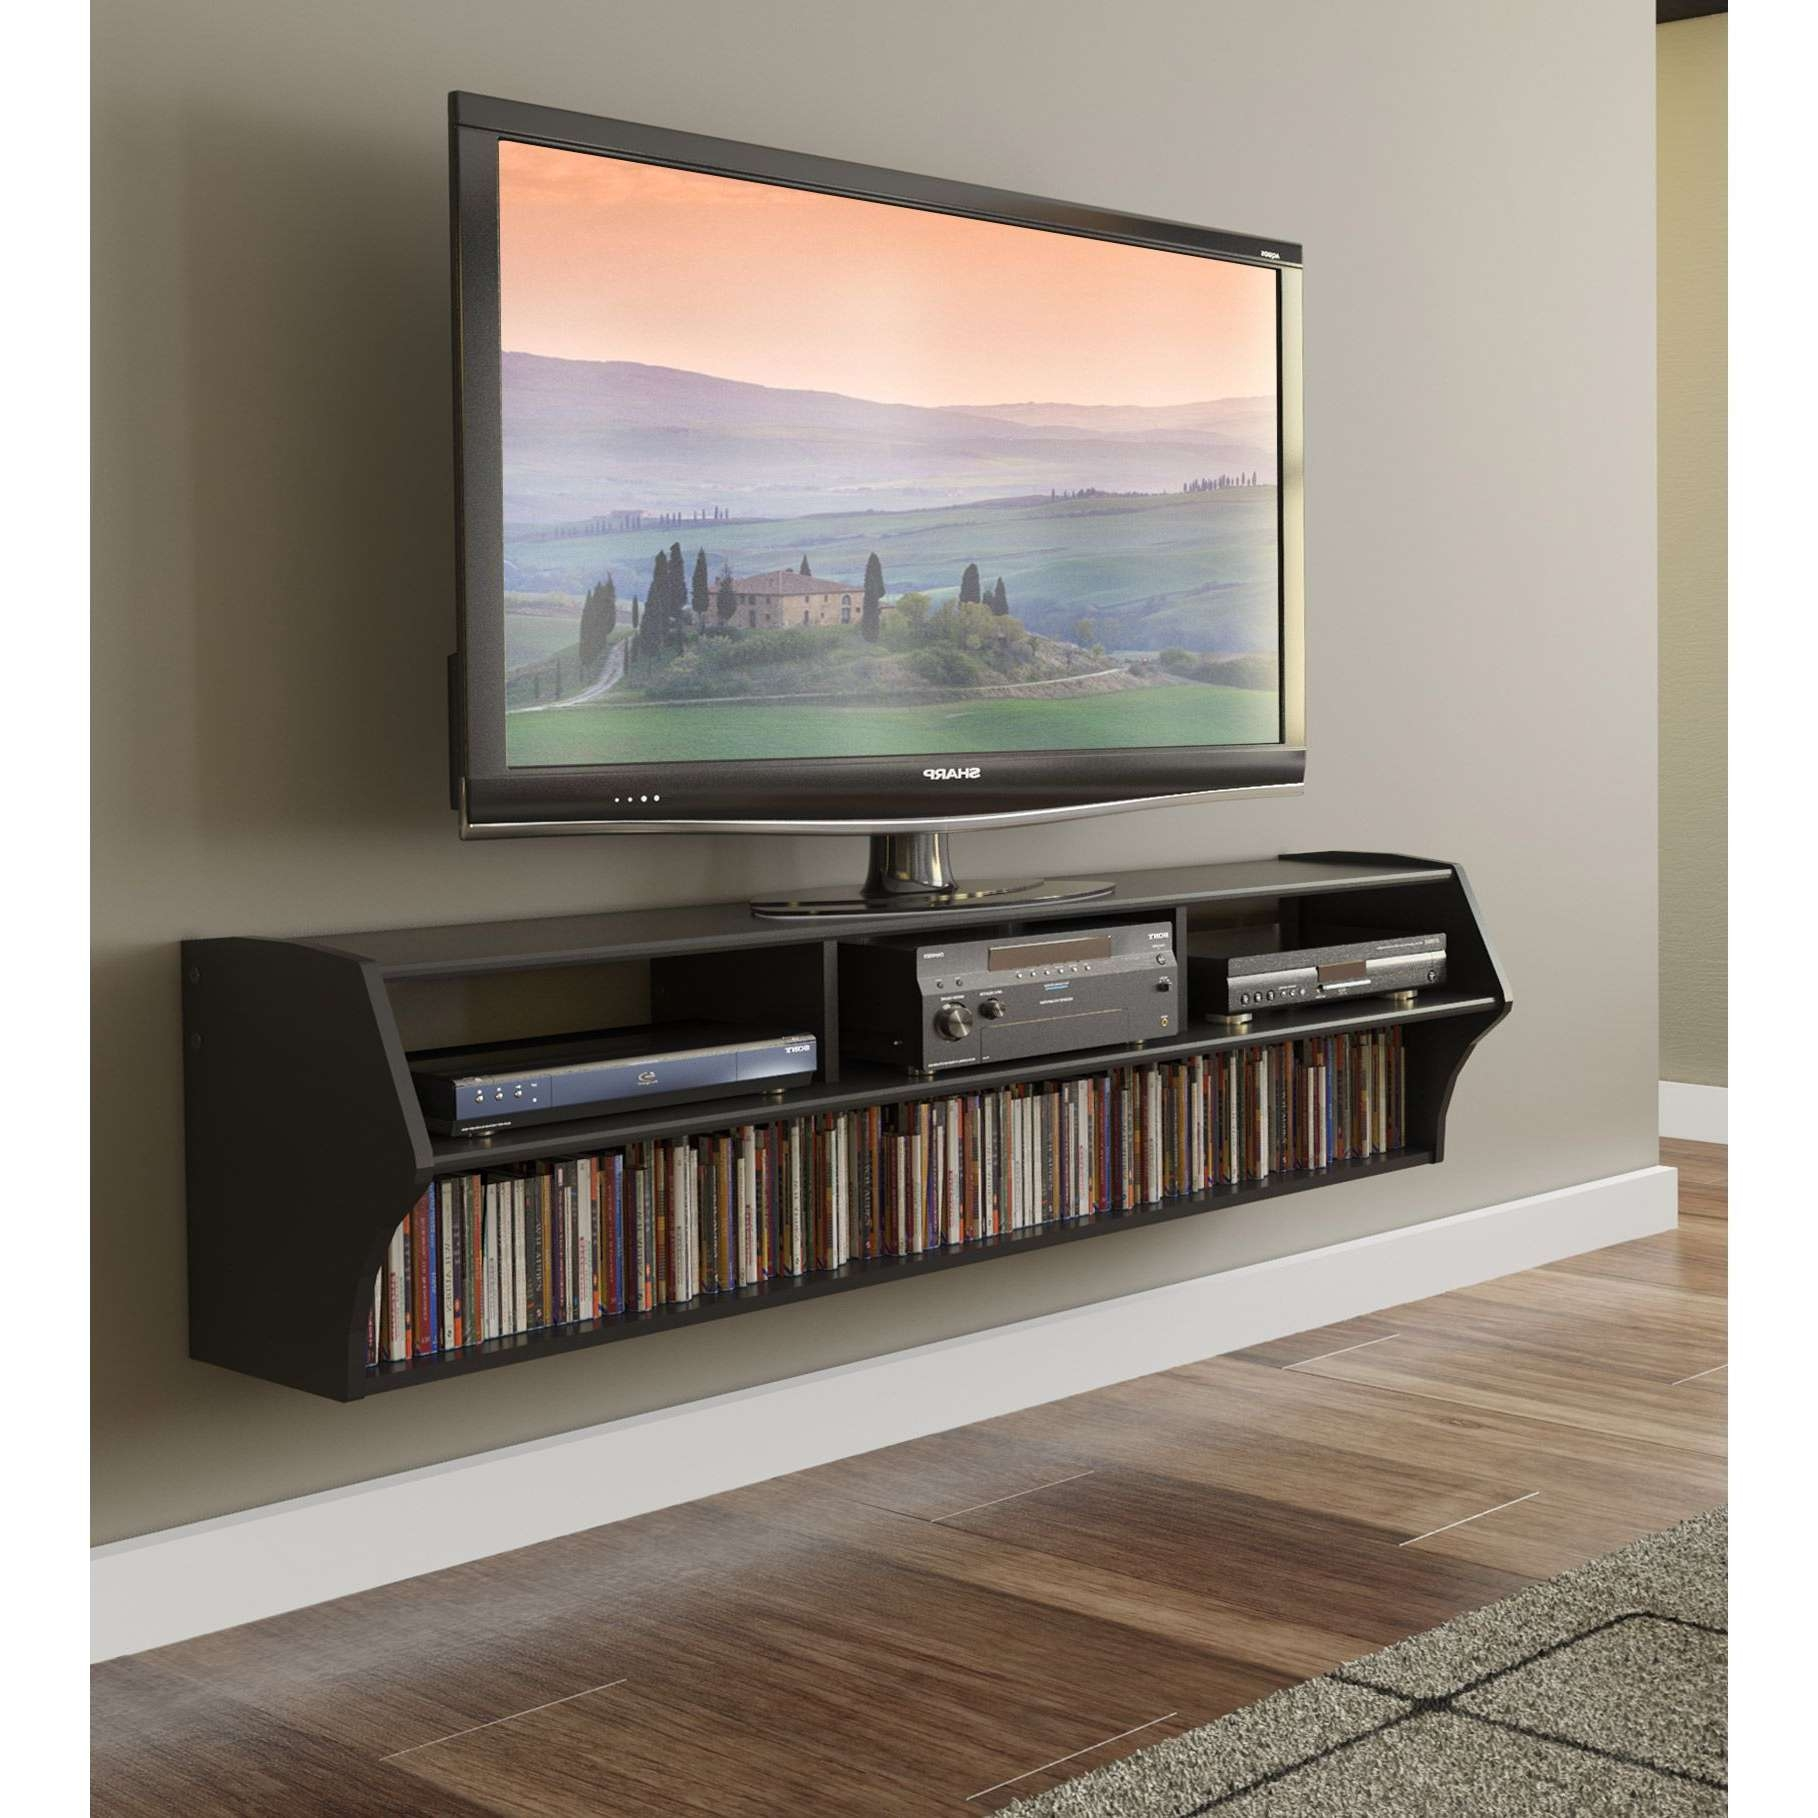 Wall Mounted Tv Entertainment Center Enchanting On Home Decors For With Wall Mounted Tv Stands With Shelves (View 15 of 15)